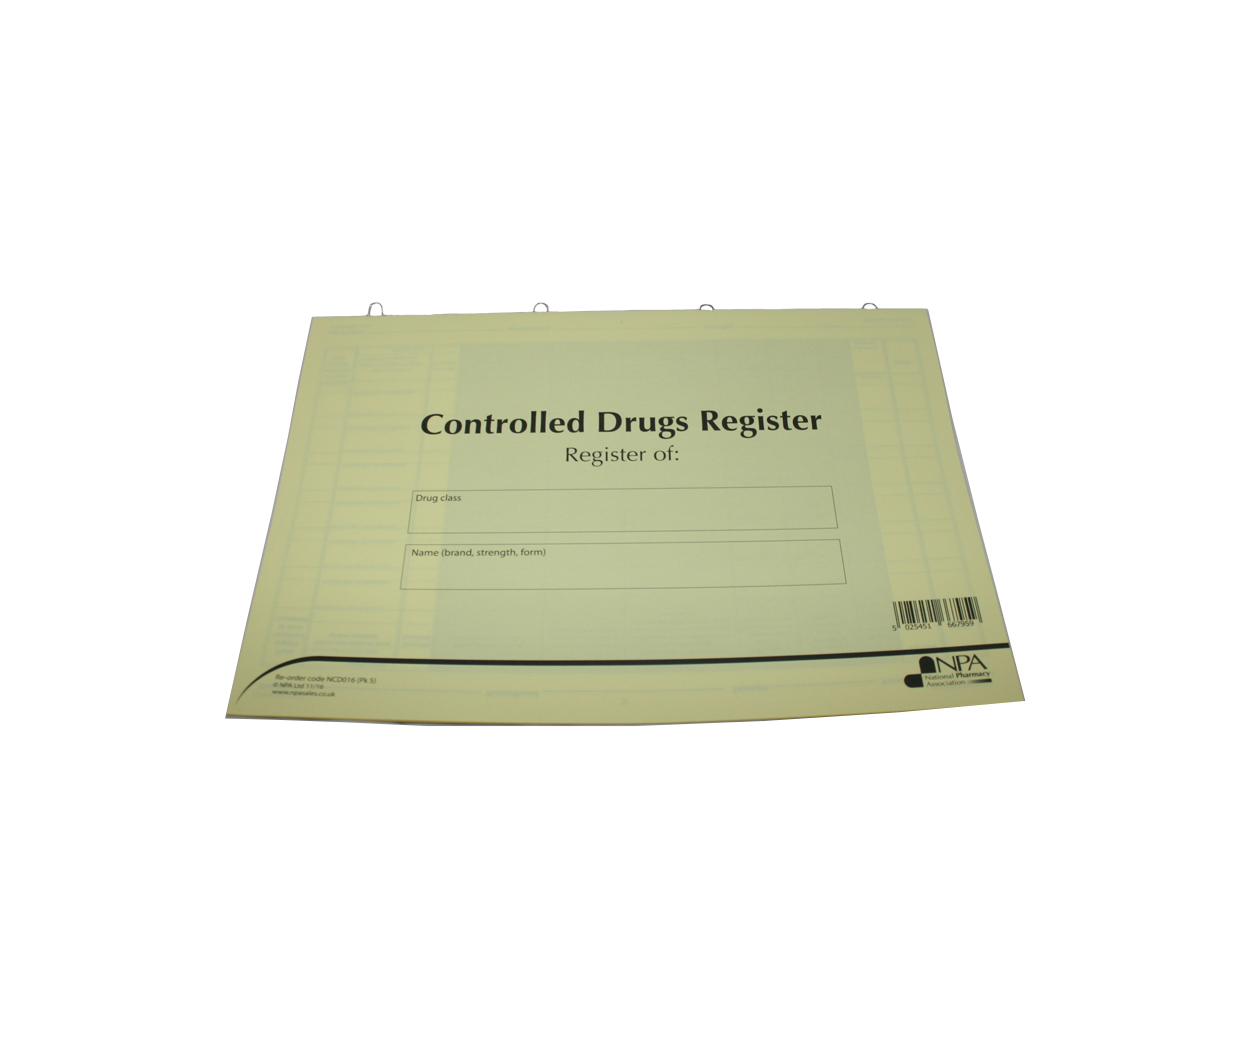 Blank Controlled Drugs Register Inserts - Pack of 5